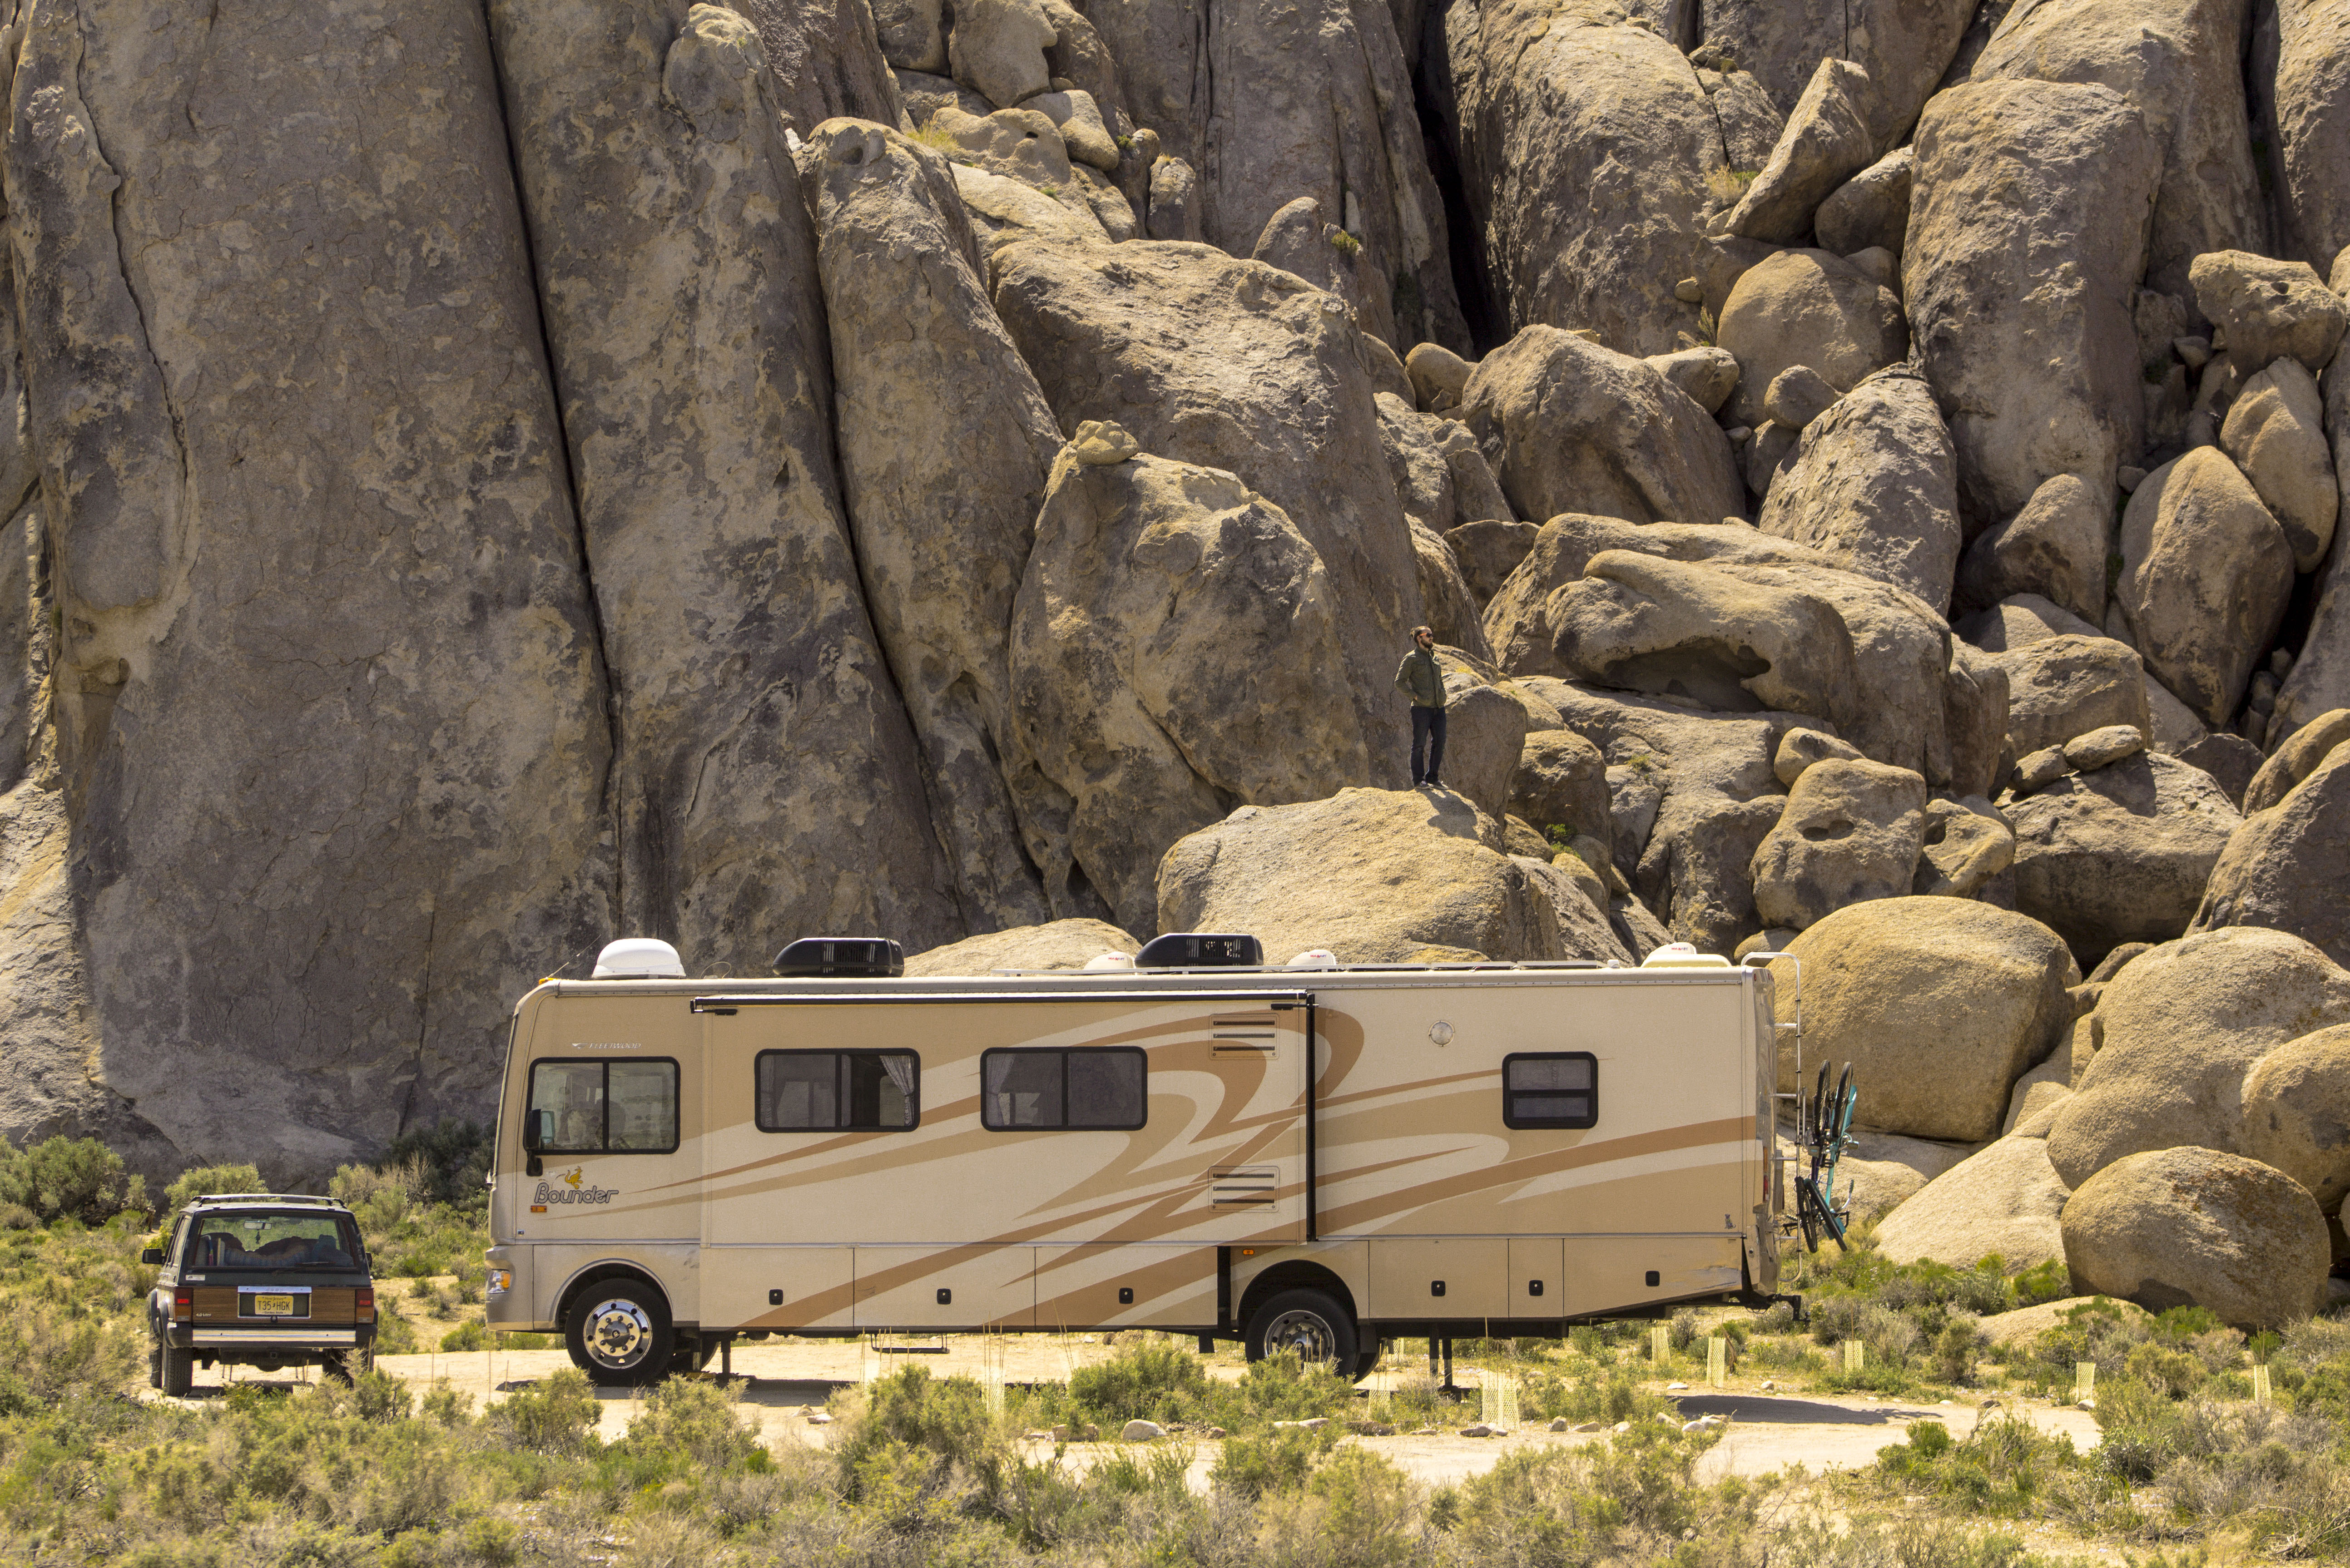 Use a generator or solar panels to recharge your RV's batteries when boondocking.